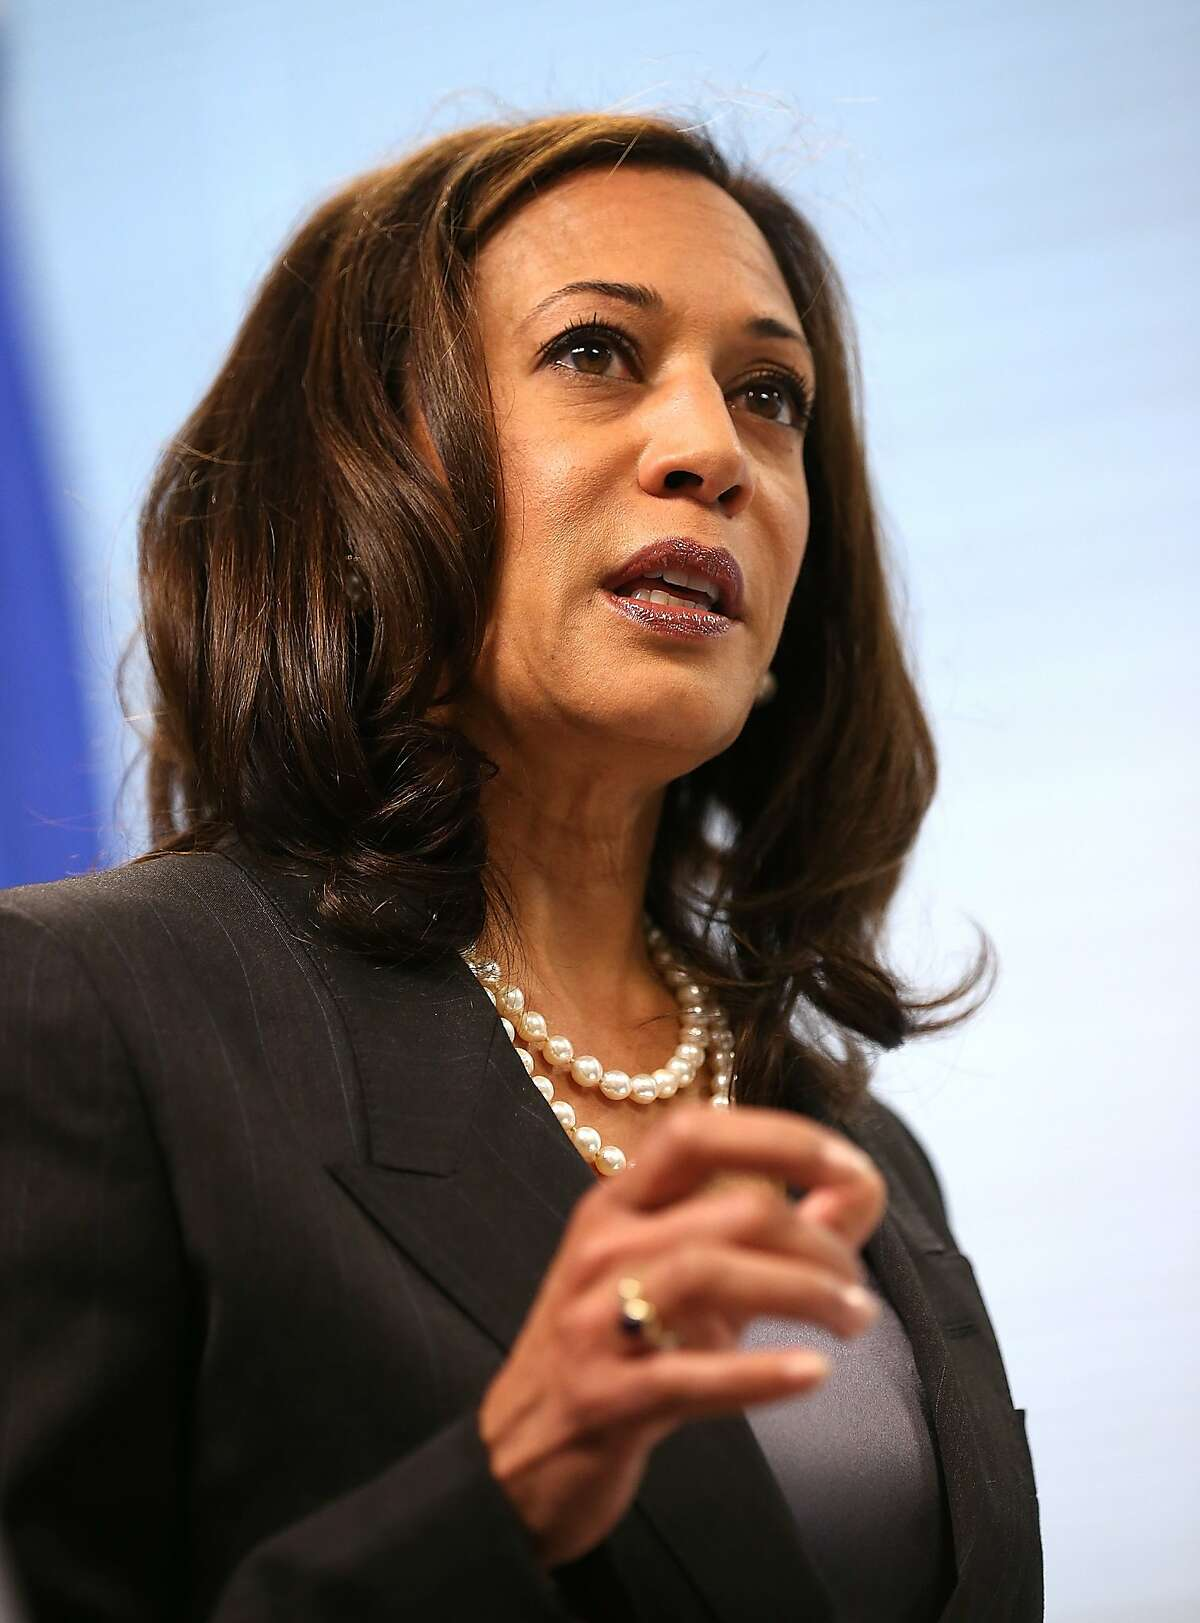 SAN FRANCISCO, CA - OCTOBER 10: California Attorney General Kamala Harris speaks during a news conference on October 10, 2013 in San Francisco, California. Harris announced the filing of a lawsuit against the for-profit Corinthian Colleges and its subsidiaries for alleged false advertising, securities fraud, intentional misrepresentations to students and the unlawful use of military insignias in advertisements. Santa Ana, California-based Corinthian Colleges operates 111 total campuses in North America with 24 Heald, Everest and WyoTech colleges in California that have an estimated 27,000 students. (Photo by Justin Sullivan/Getty Images)